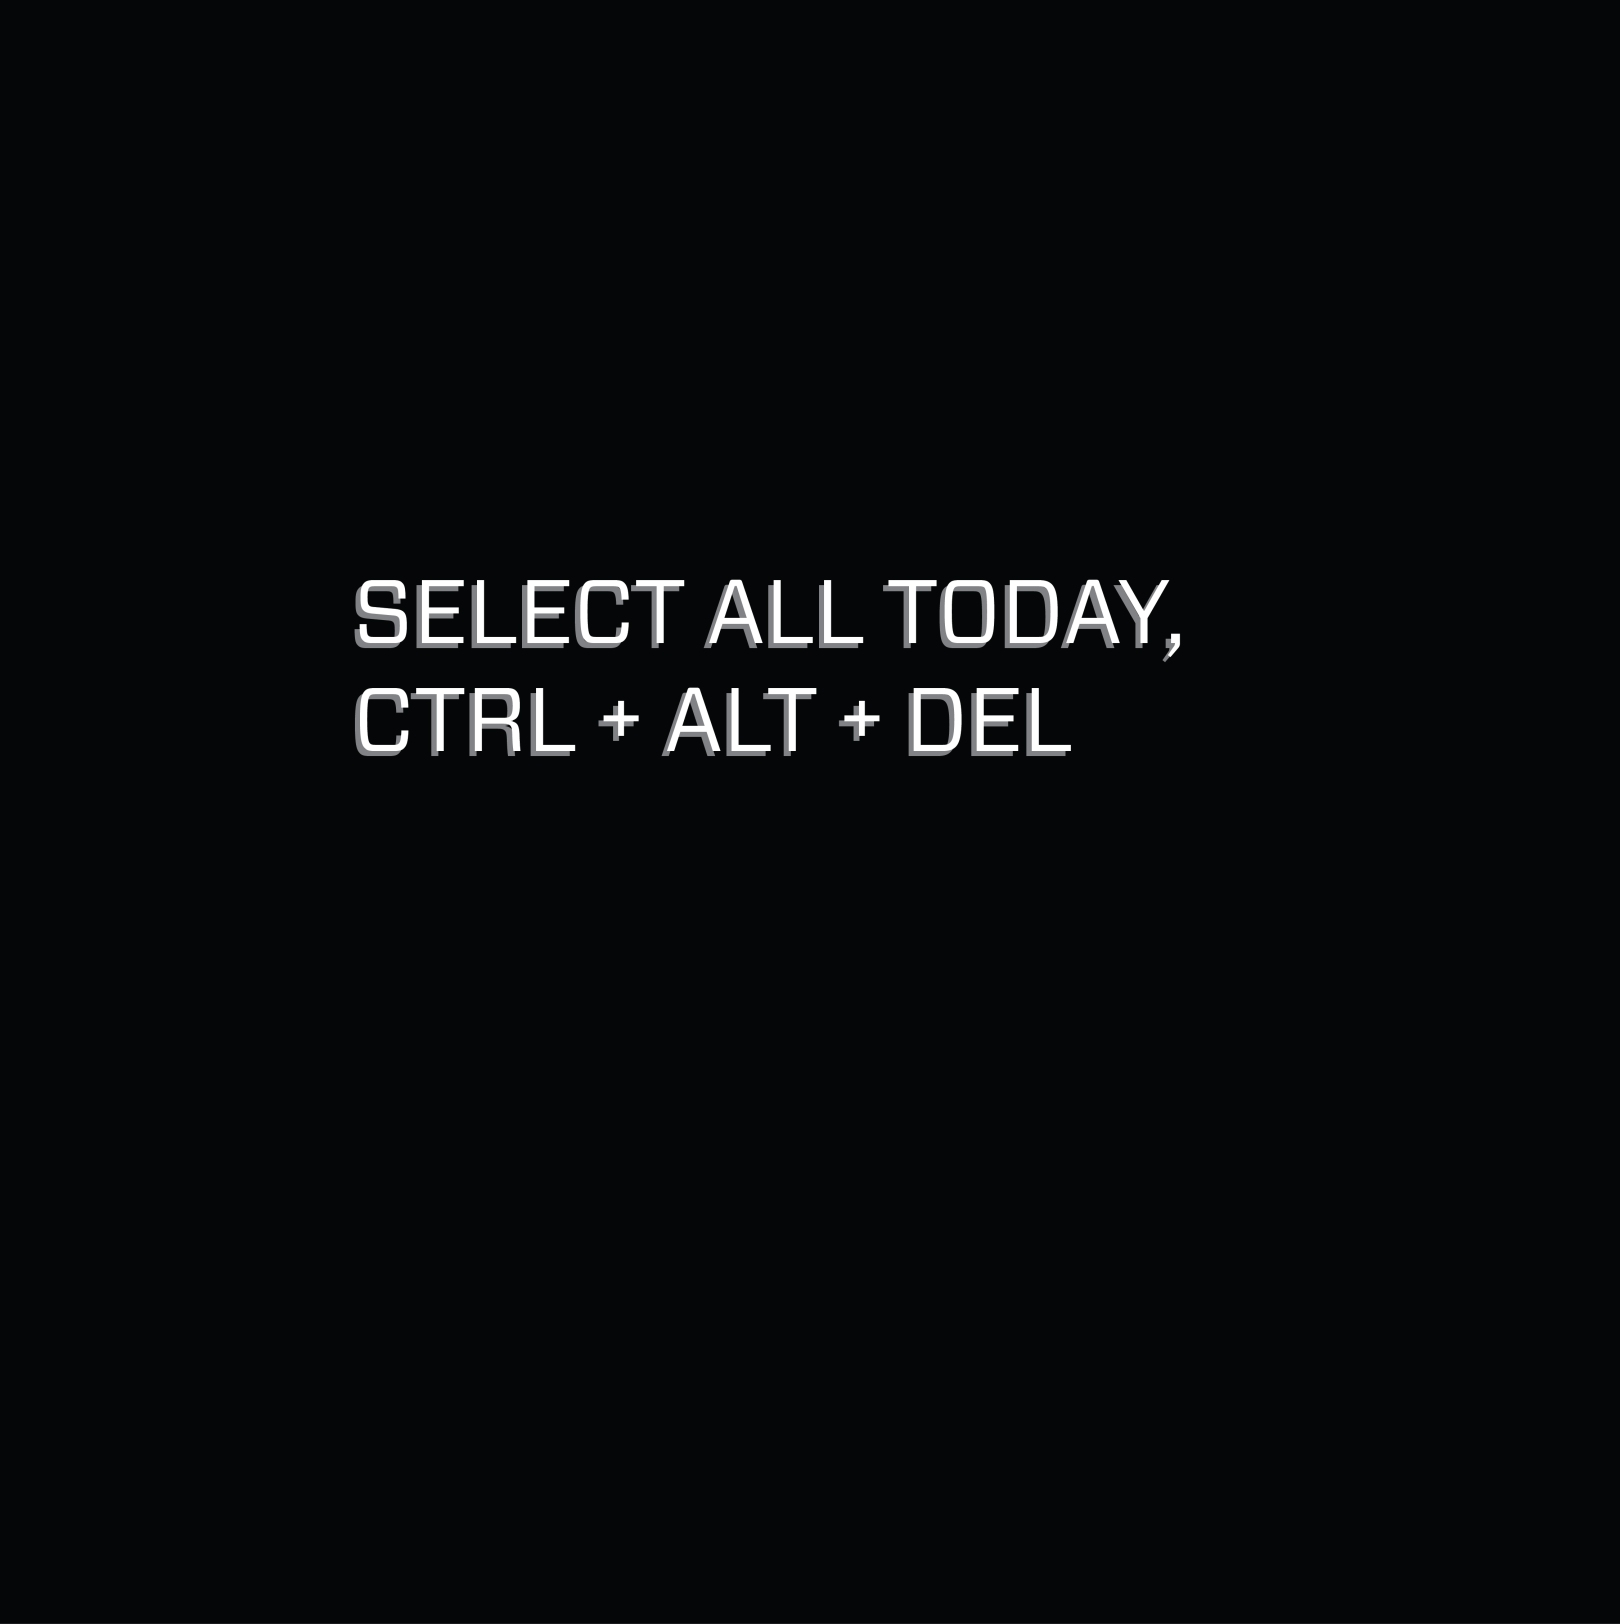 select today